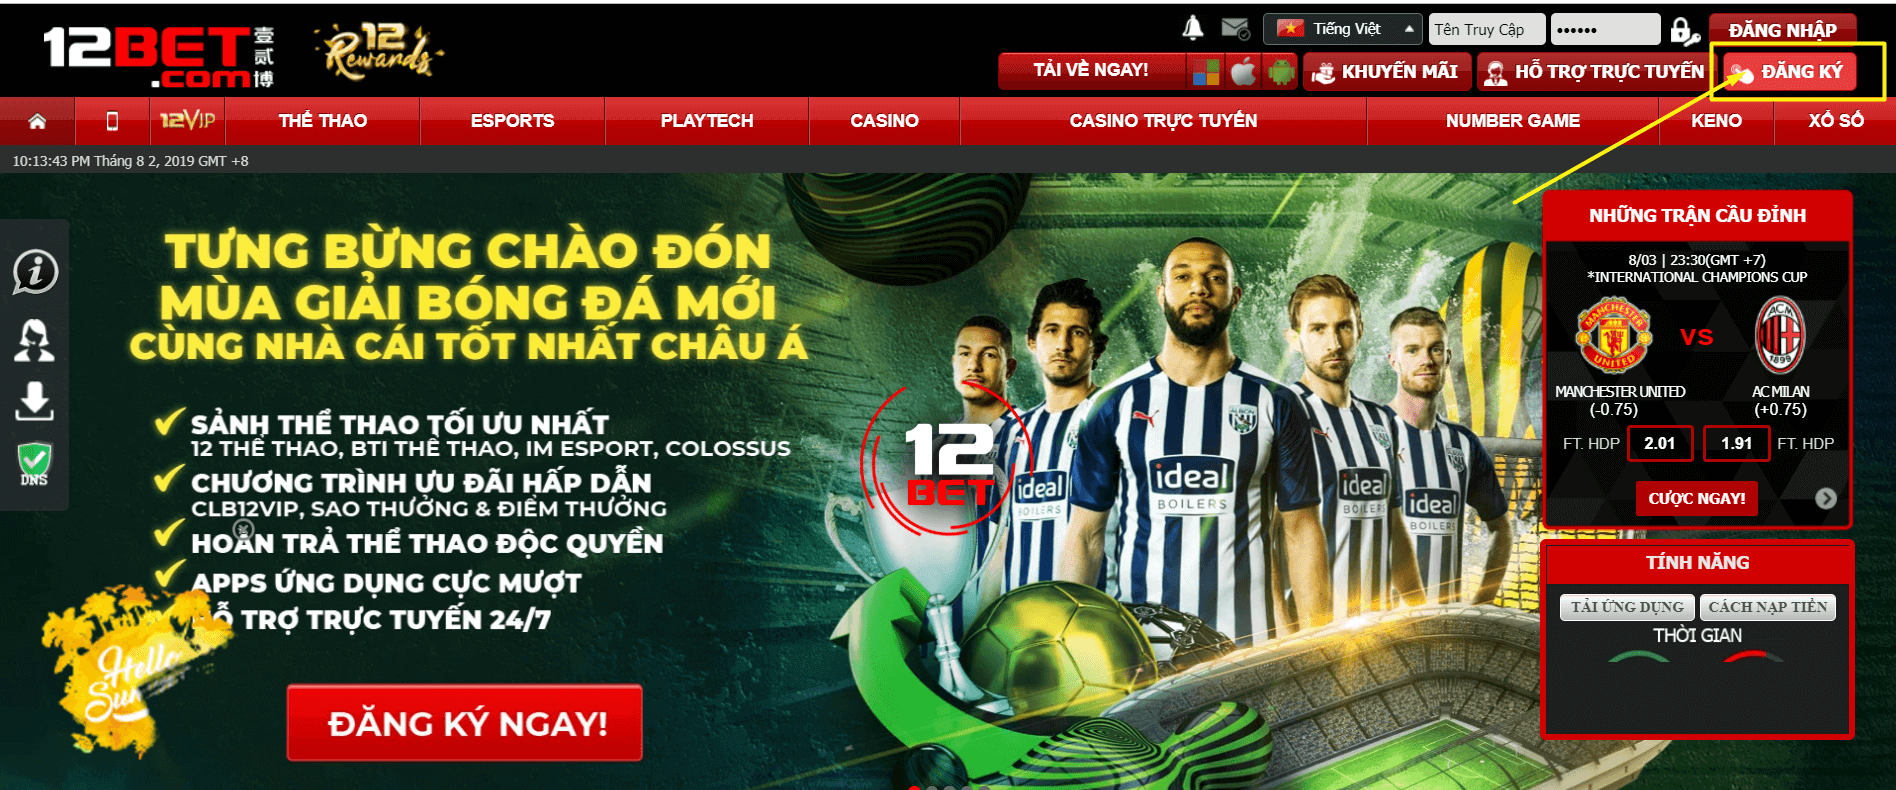 giao diện 12bet